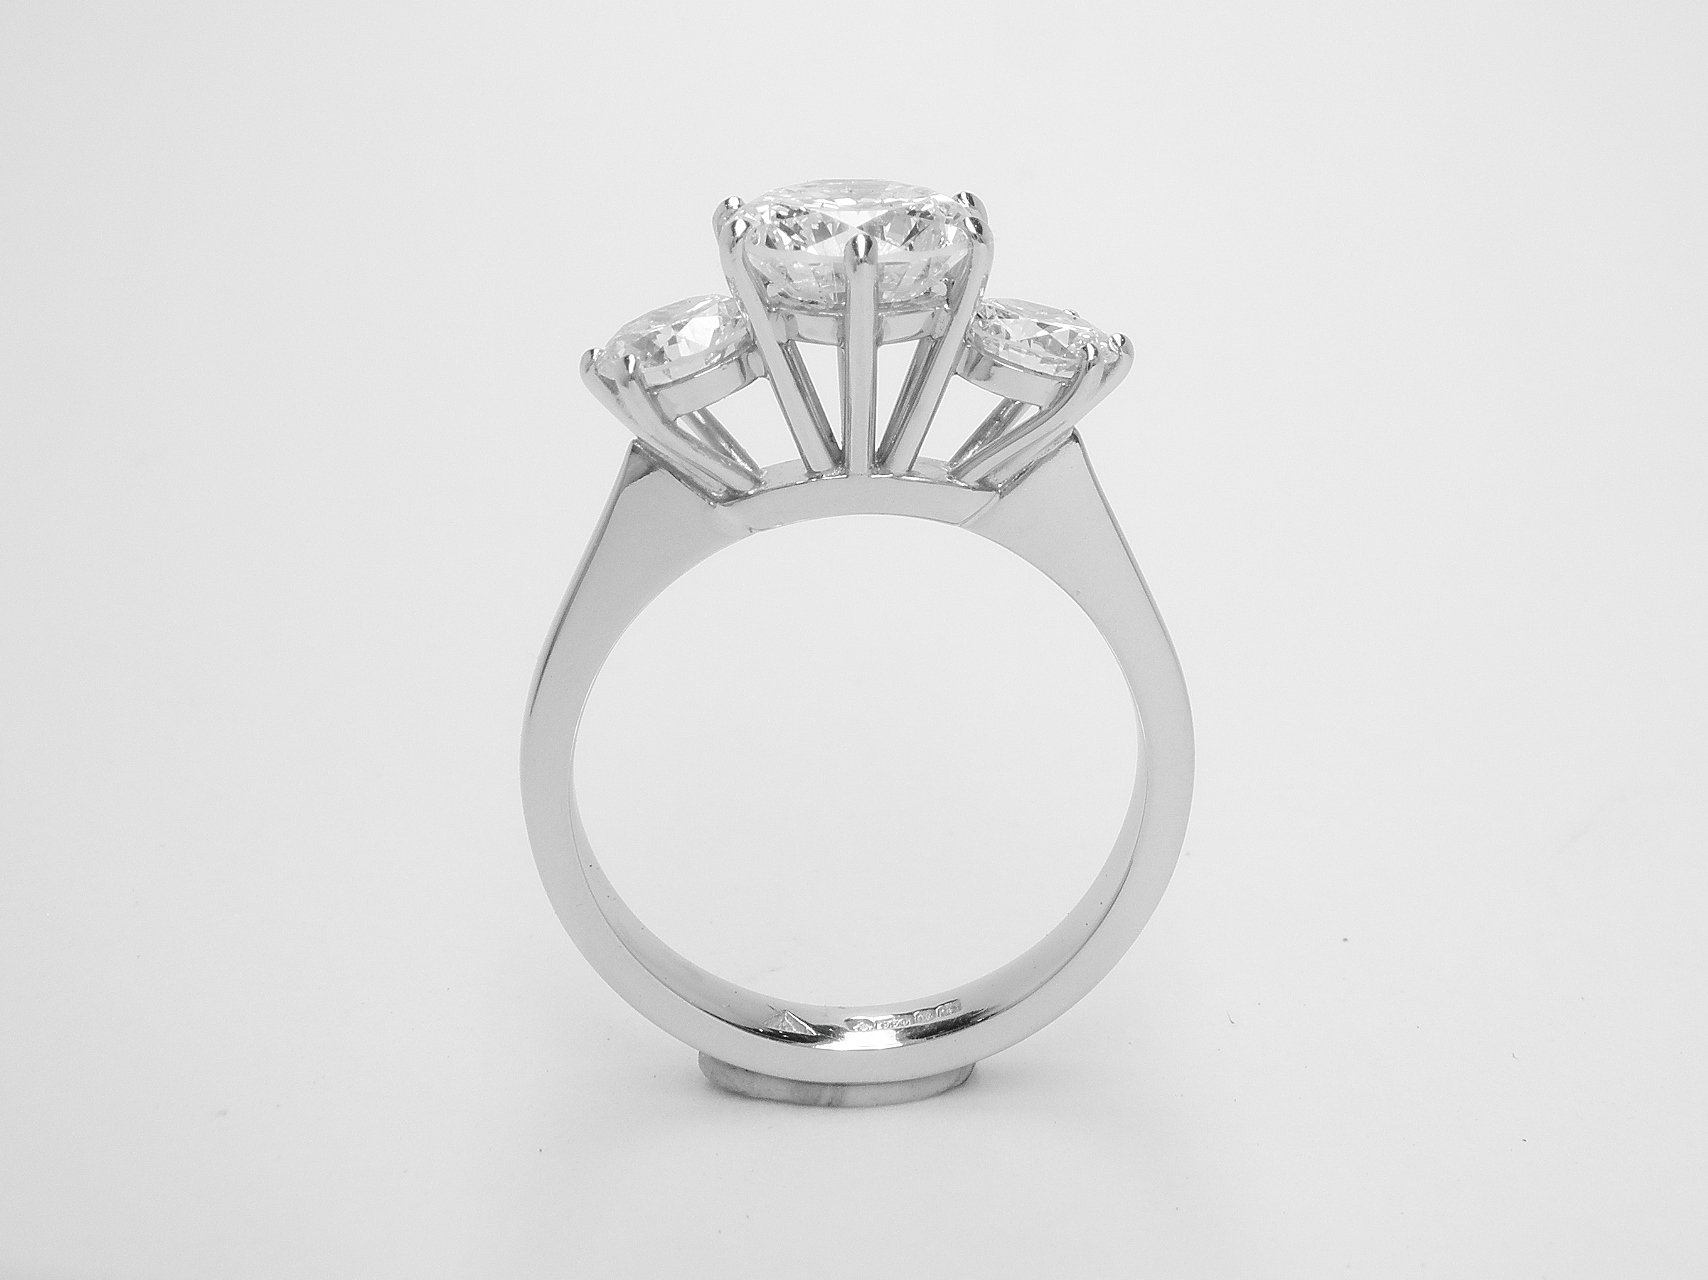 A 3 stone round brilliant cut diamond ring mounted in platinum with large raised centre diamond.